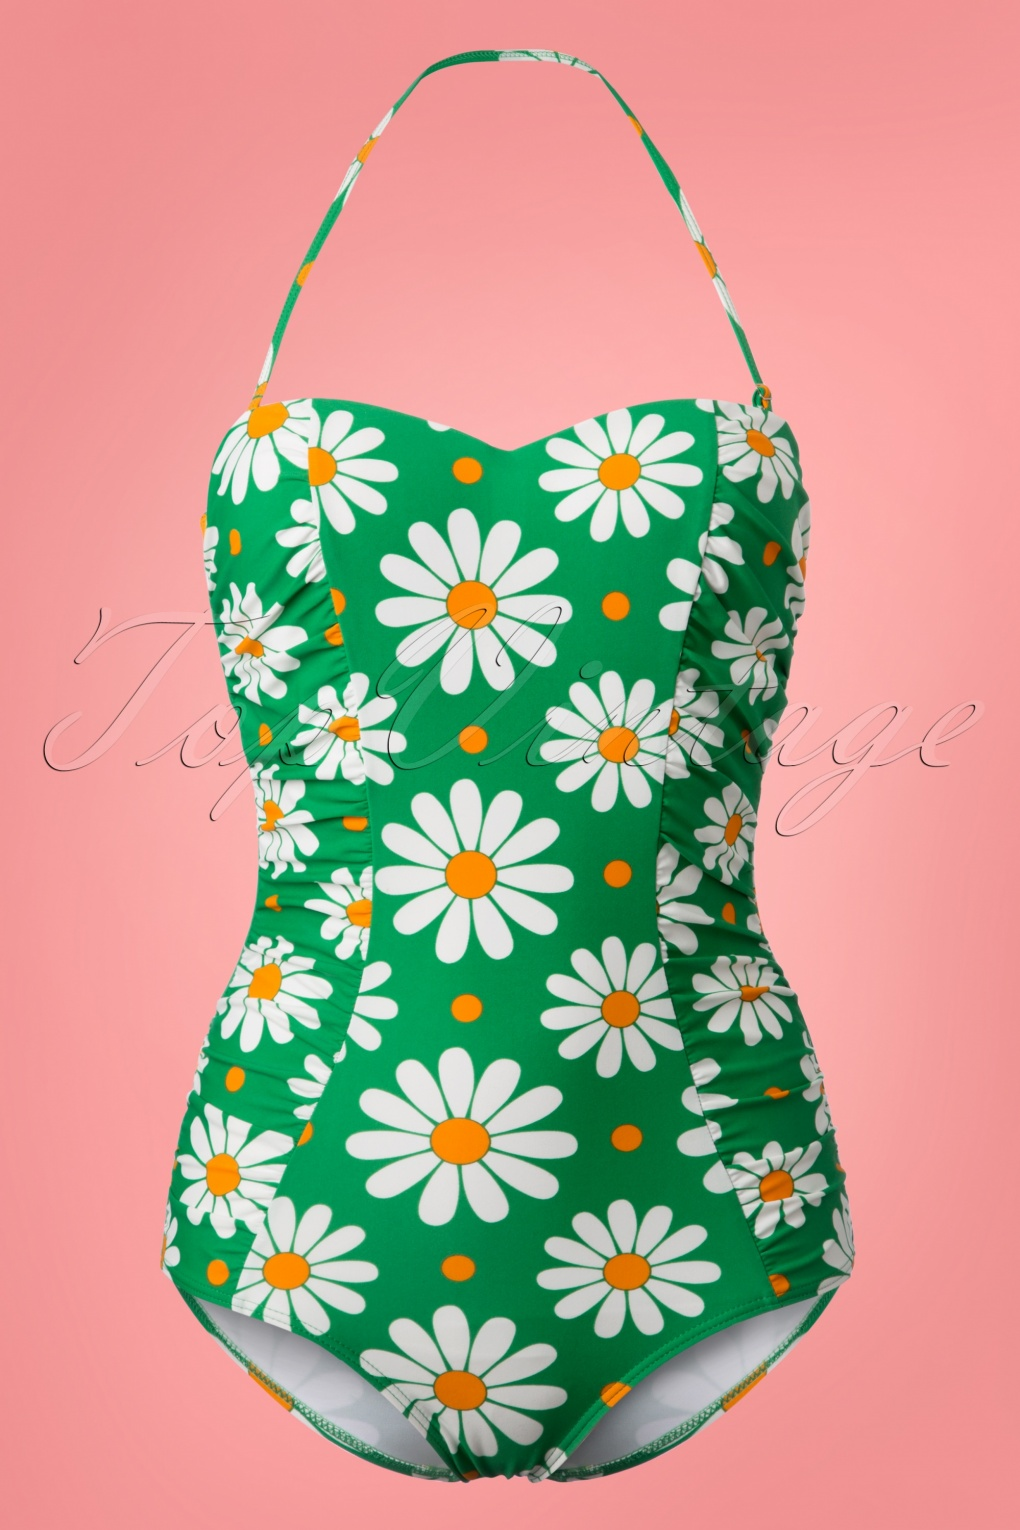 Vintage Bathing Suits | Retro Swimwear | Vintage Swimsuits 50s Crazy Daisy Halter Swimsuit in Grass Green £38.66 AT vintagedancer.com